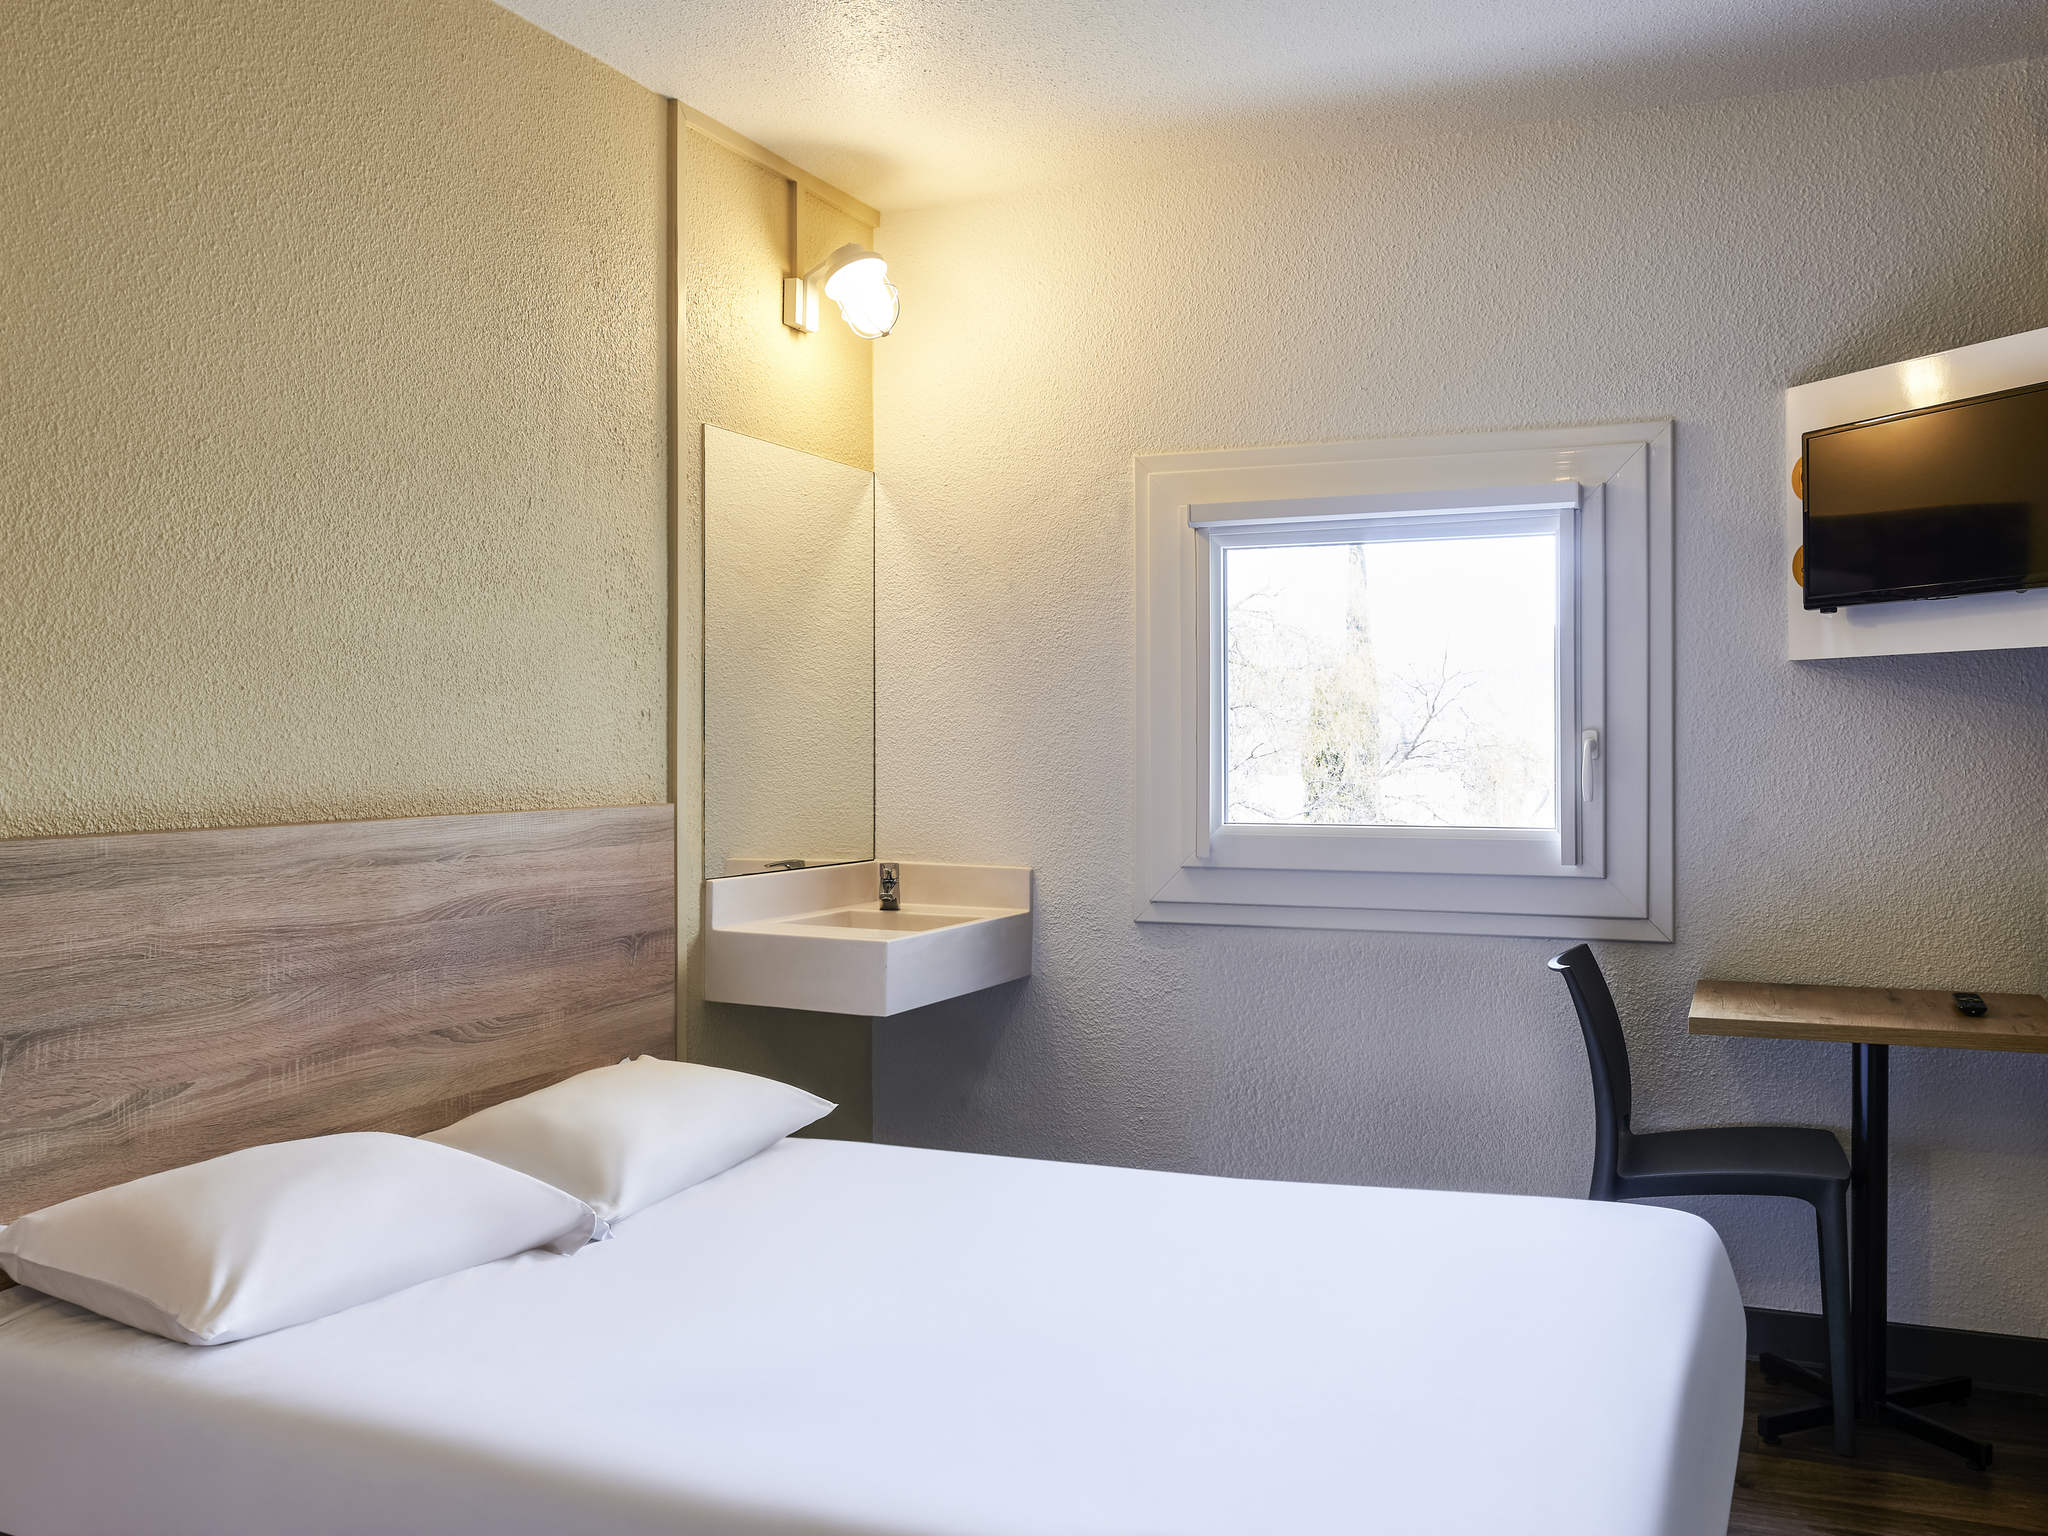 Hotel in bagnolet hotelf1 paris porte de montreuil for Reservation hotel formule 1 paris